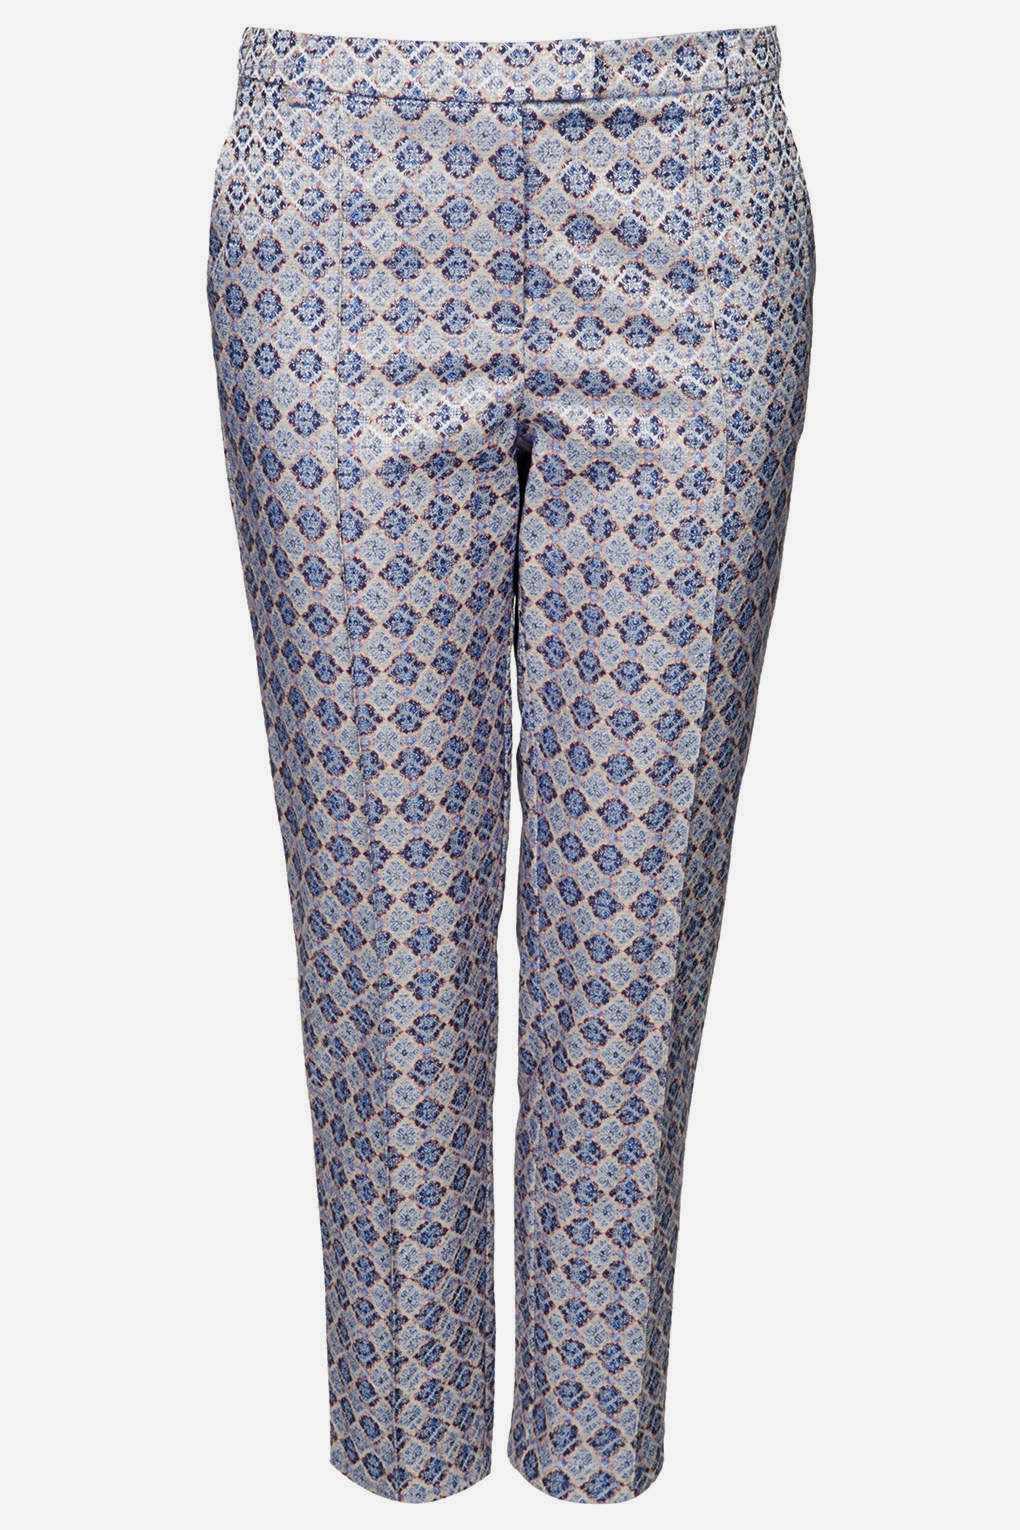 Printed trousers – Can I tempt you?